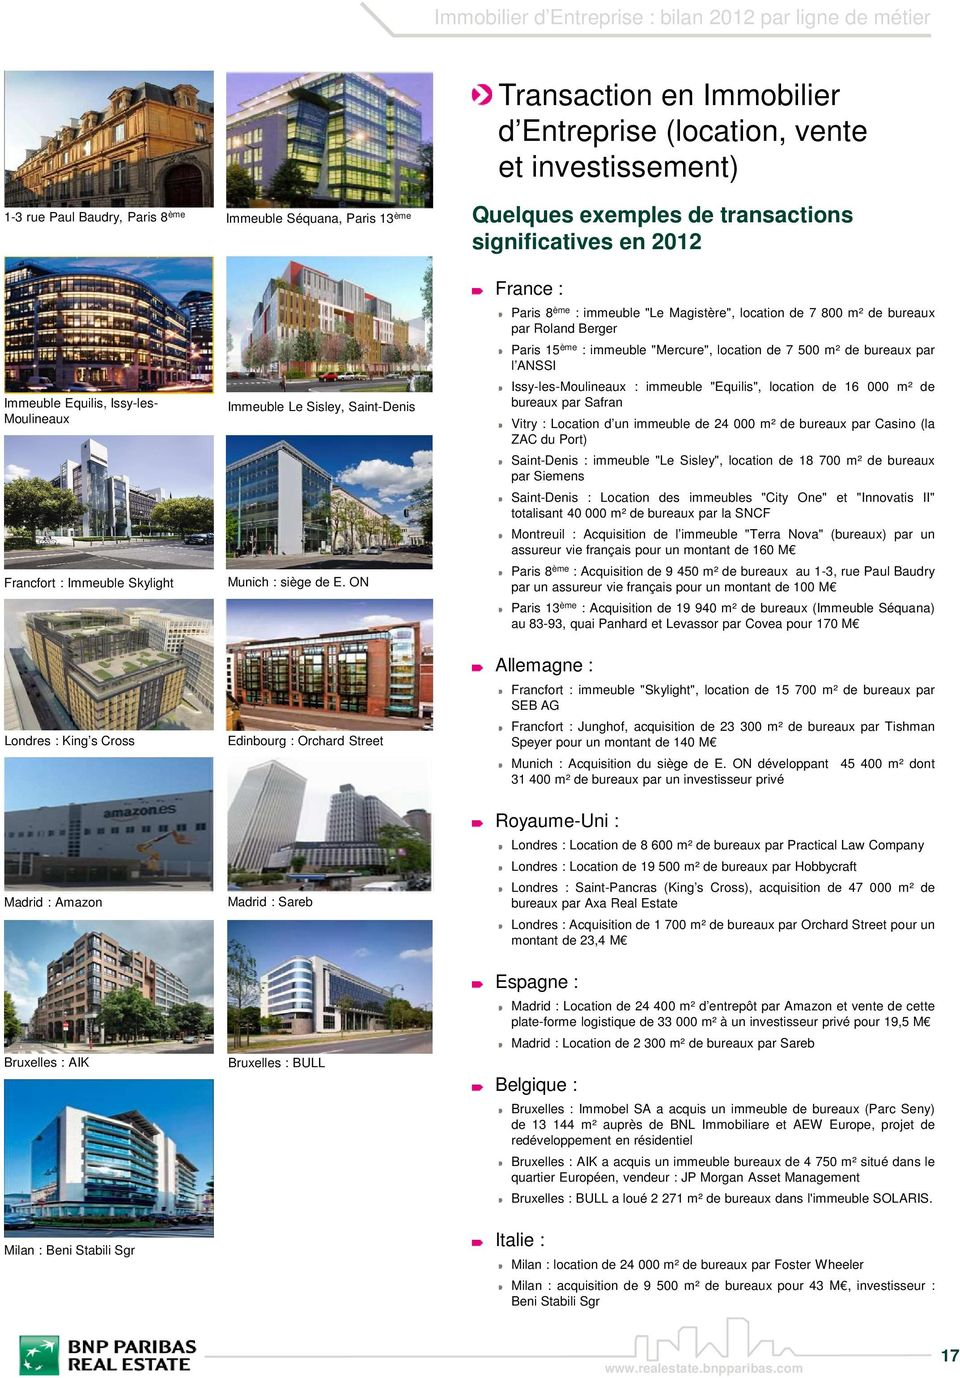 ON Edinbourg : Orchard Street Madrid : Sareb Bruxelles : BULL Transaction en Immobilier d Entreprise (location, vente et investissement) Quelques exemples de transactions significatives en 2012